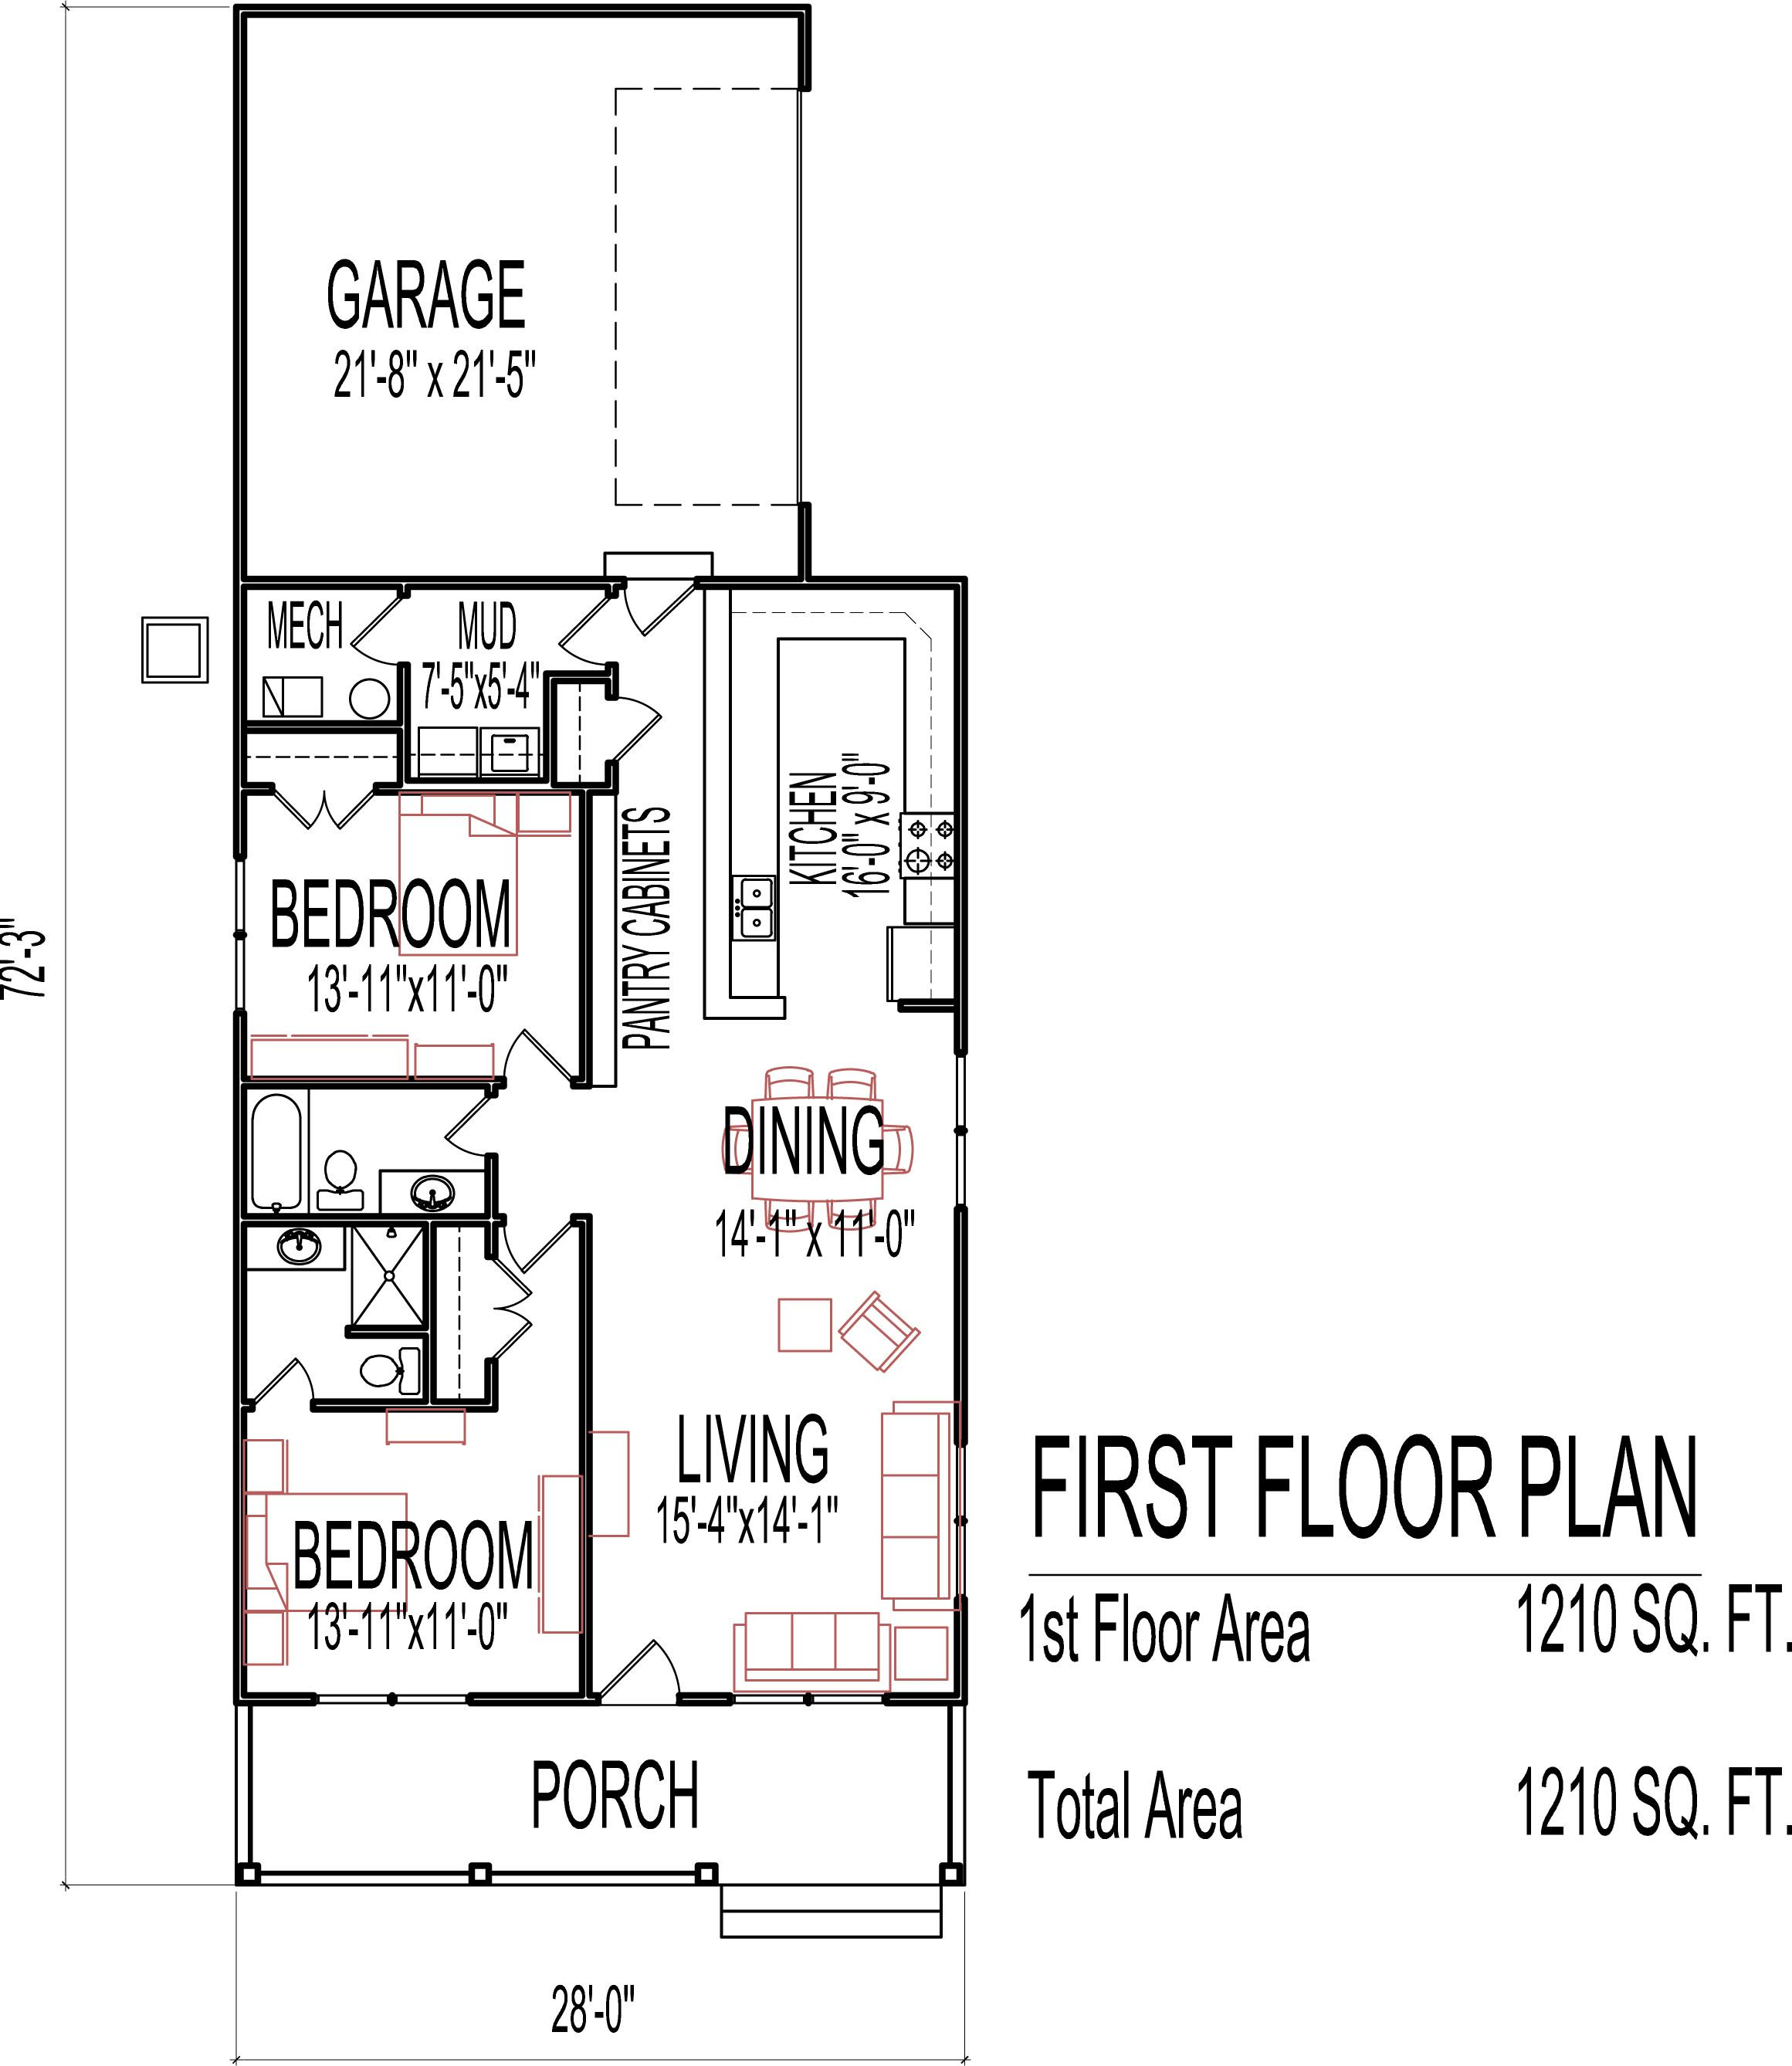 small low cost economical 2 bedroom 2 bath 1200 sq ft single story house floor plans - Small House Plan